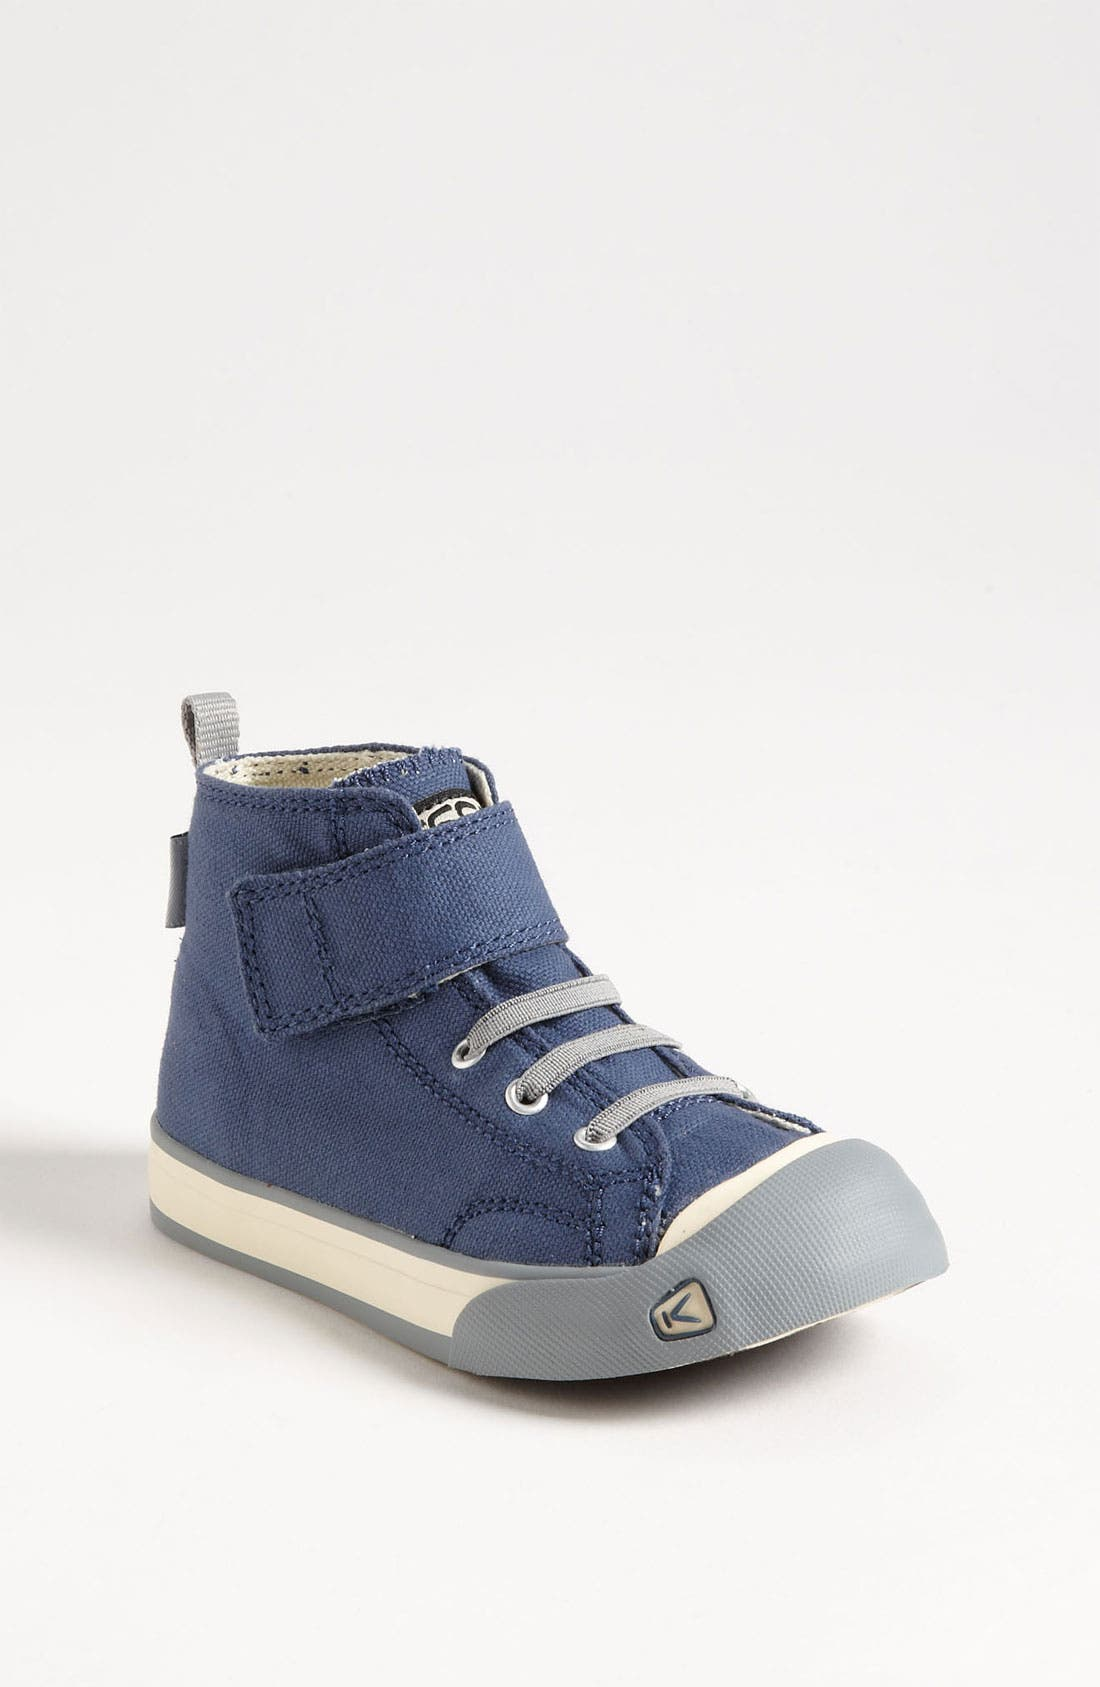 Alternate Image 1 Selected - Keen 'Coronado' High Top Sneaker (Toddler & Little Kid)